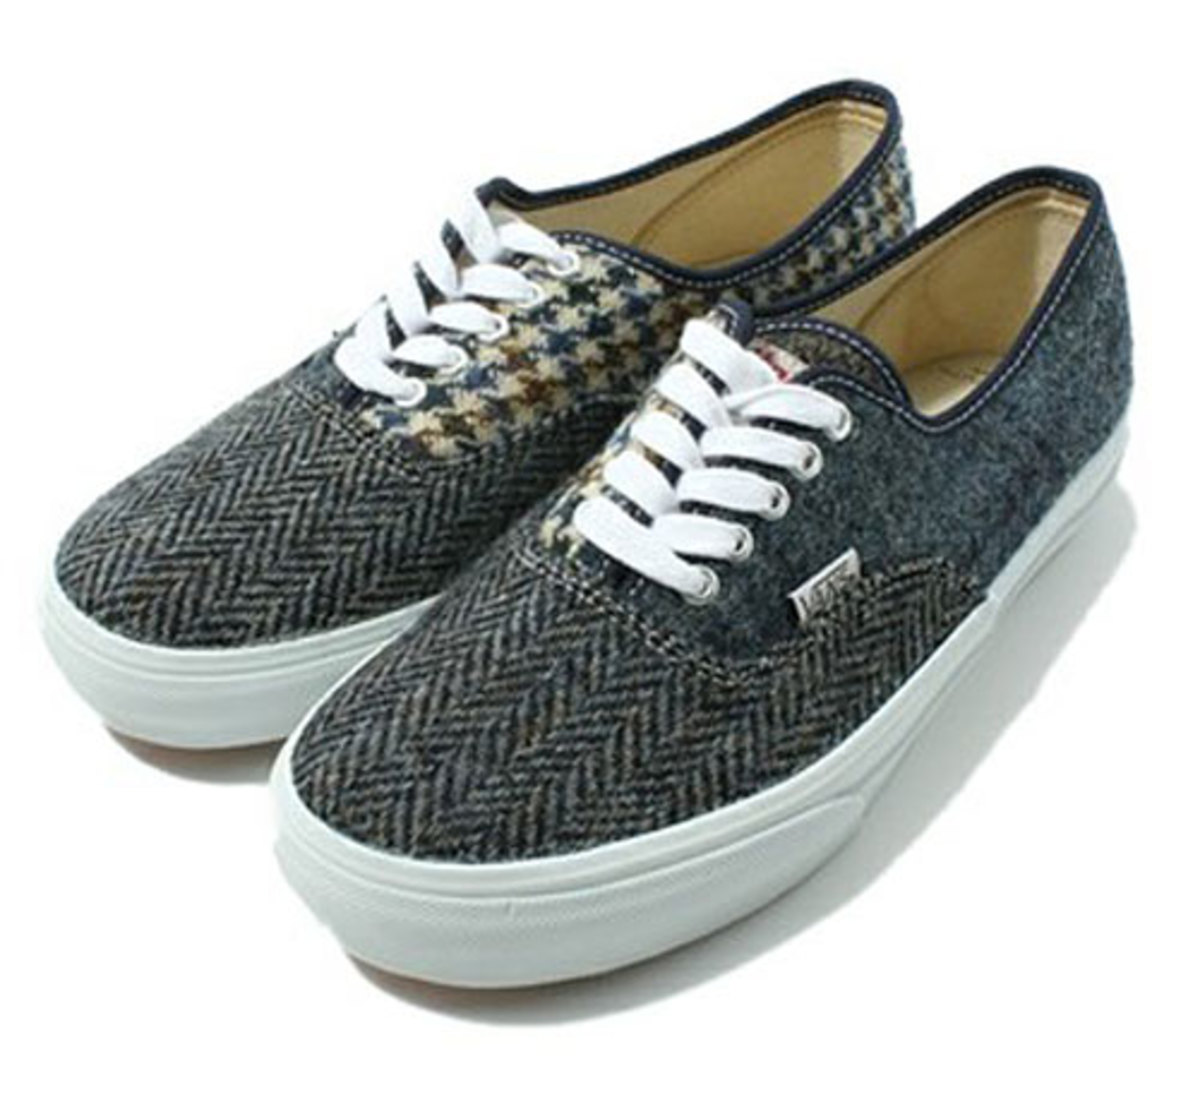 beauty-and-youth-vans-harris-tweed-pack-02